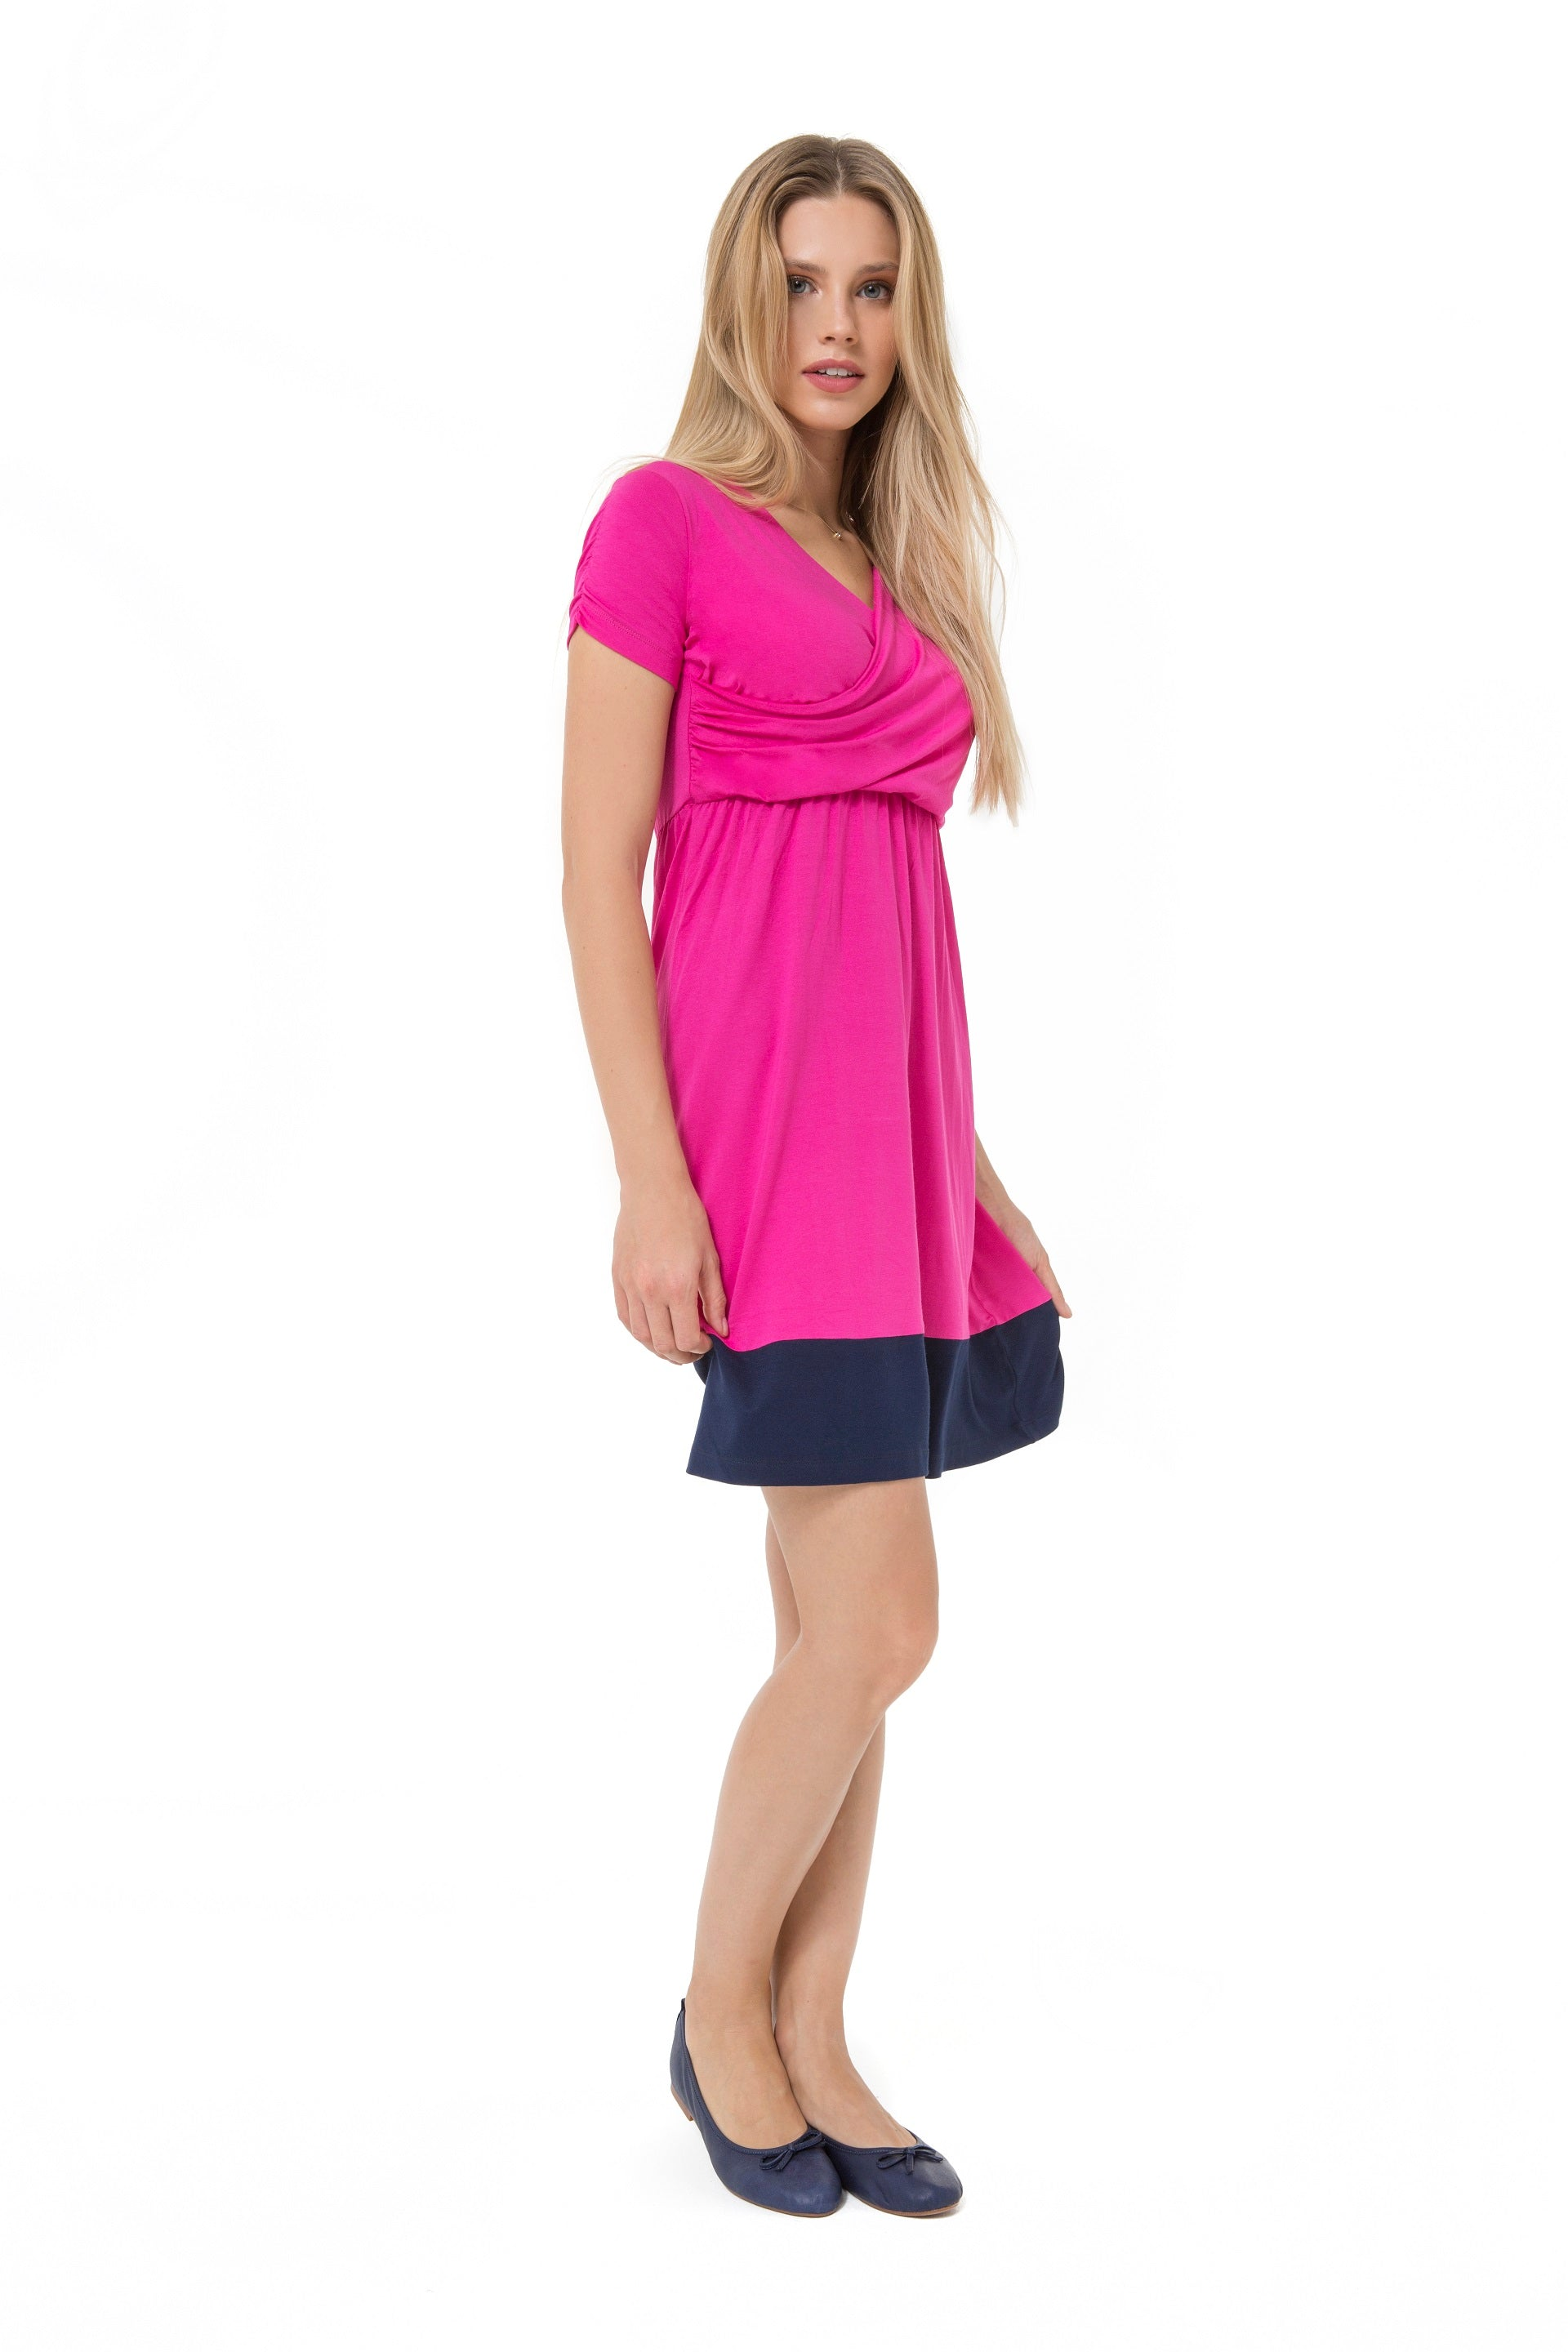 Accouchee Highlight Dress Pink